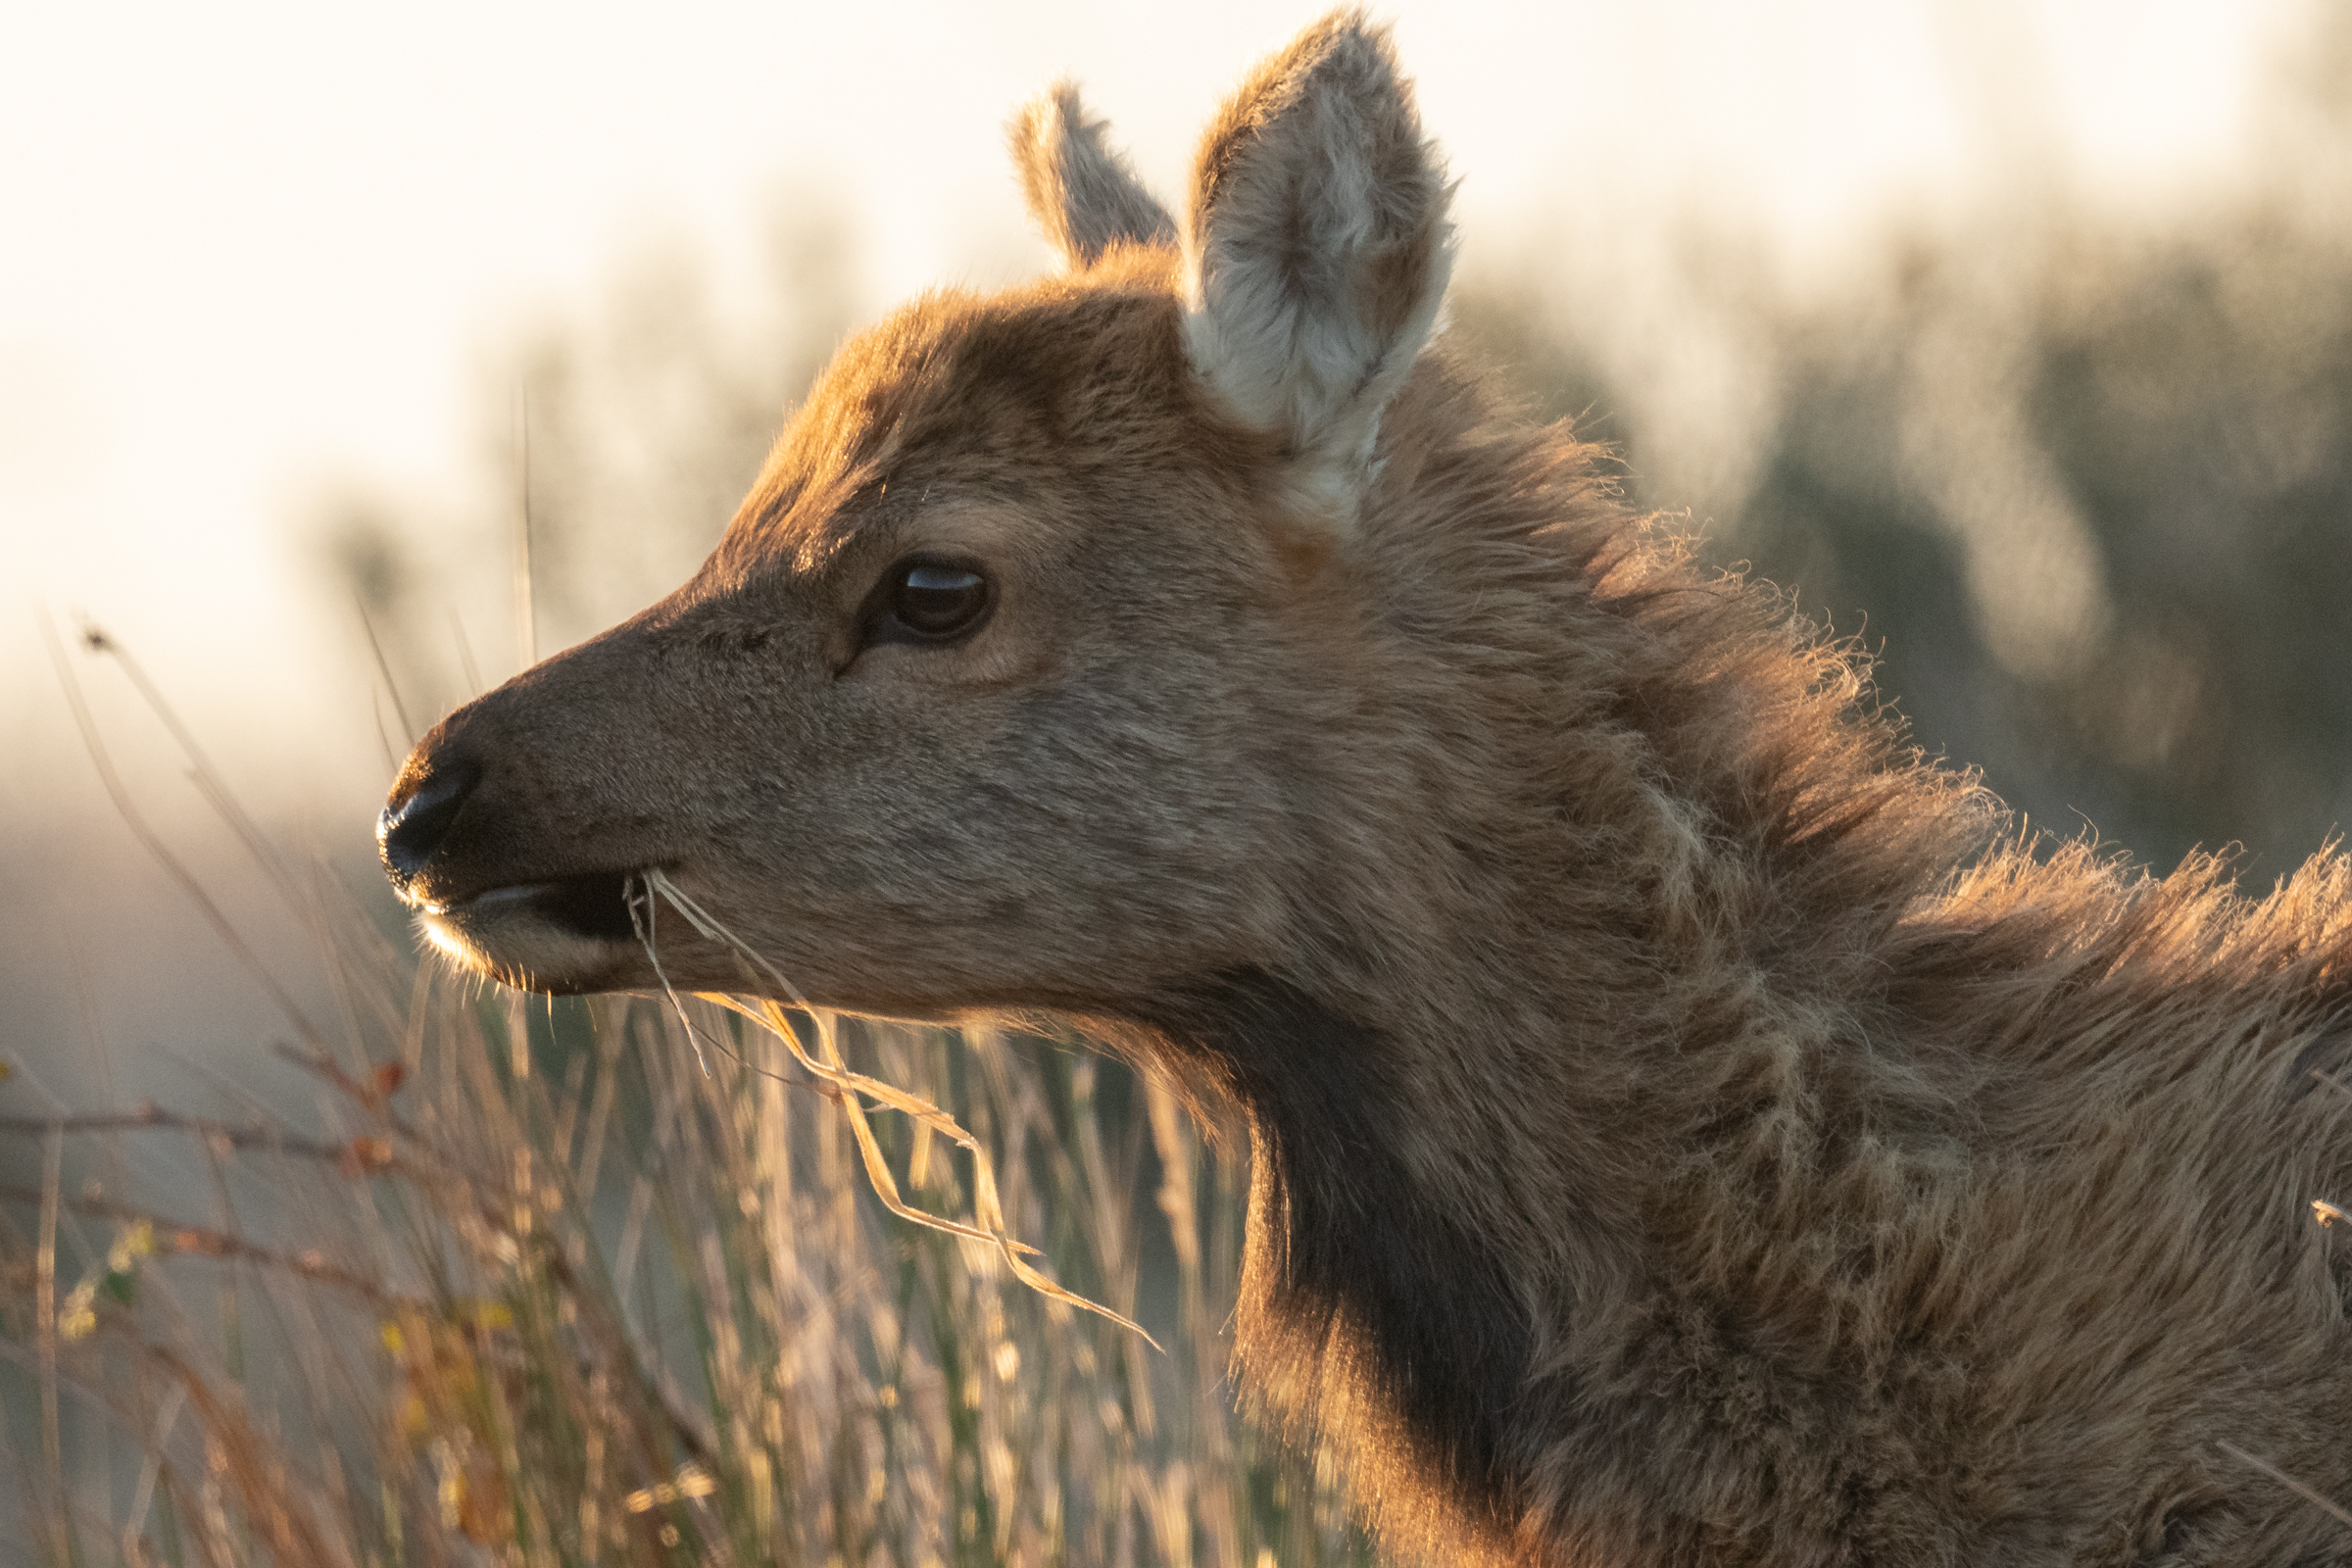 A tule elk calf grazes in the glow of sunset in the Elk Preserve section of Point Reyes National Seashore.